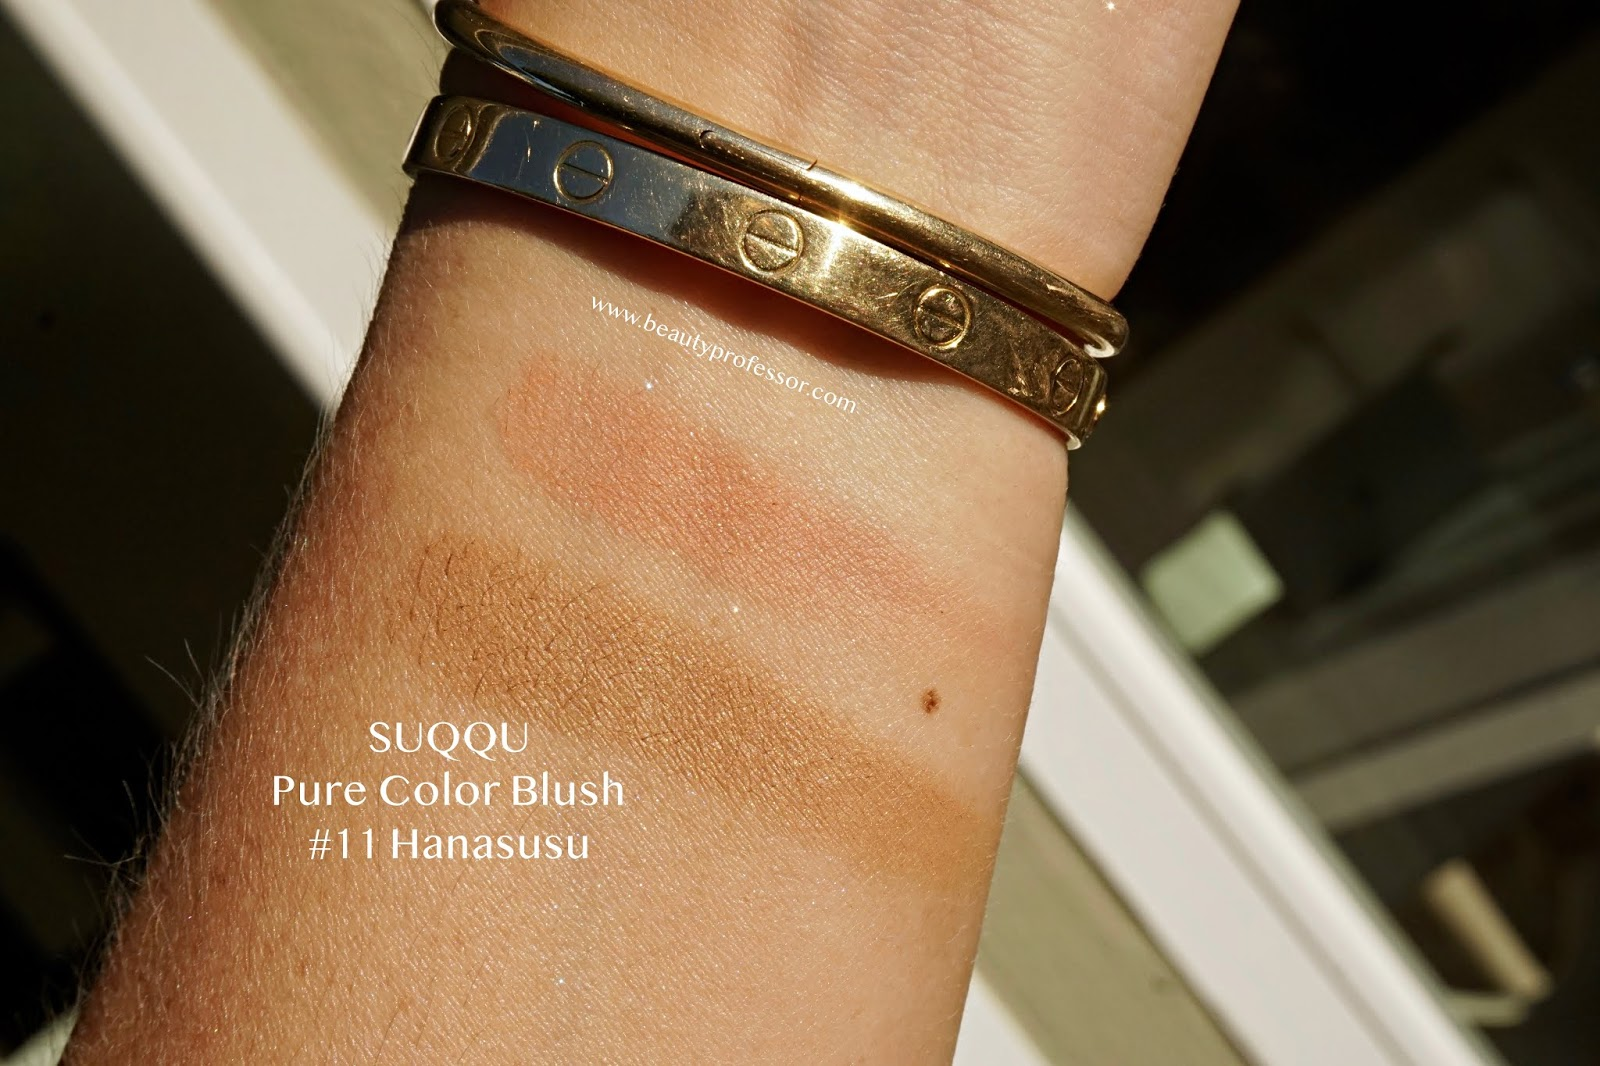 SUQQU Pure Colour Blush Blusher #11 Hanasusu swatches